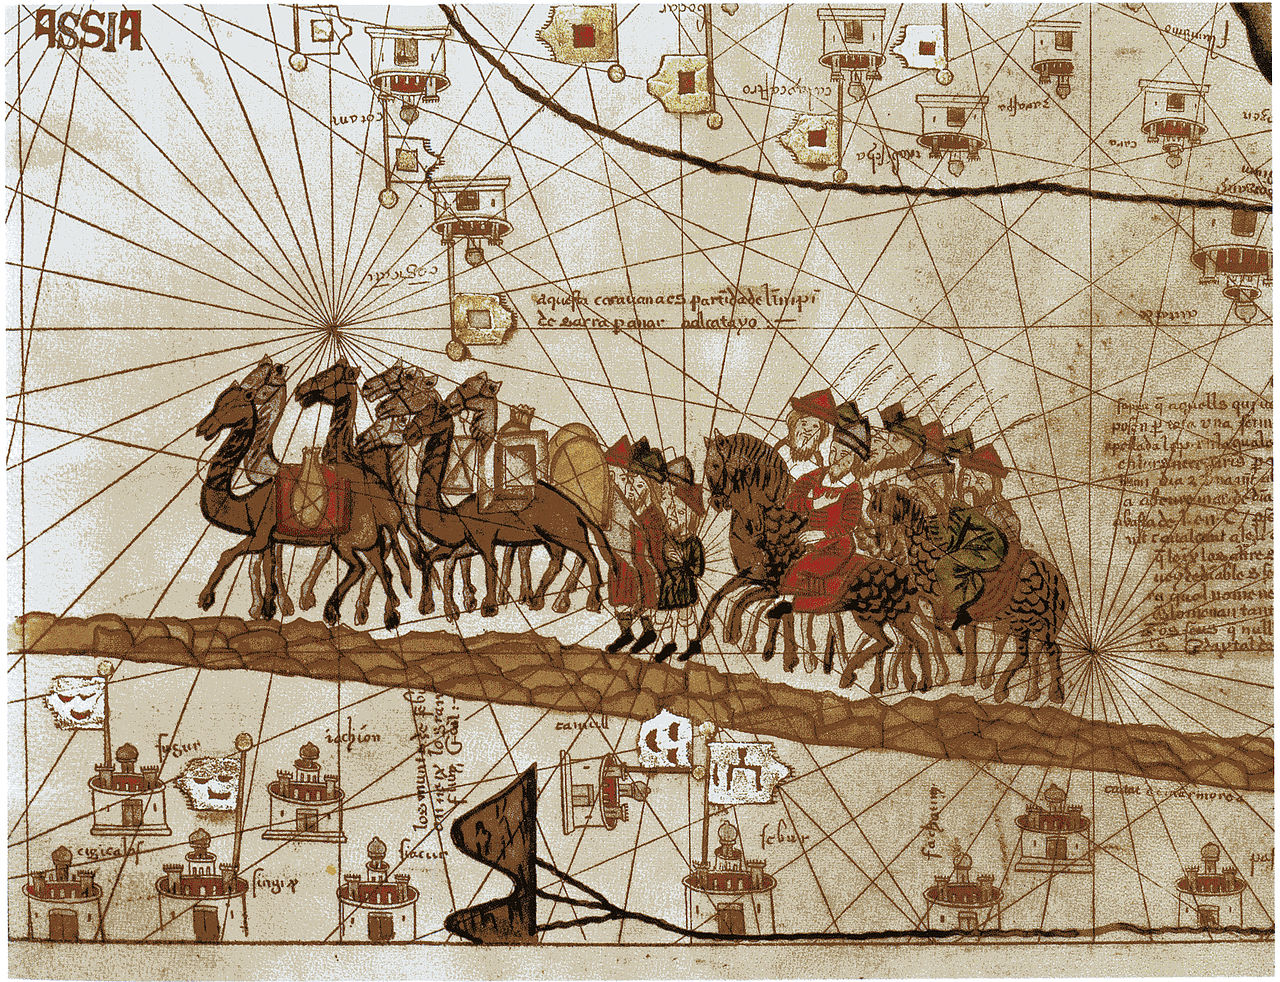 Marco Polo on the Silk Road